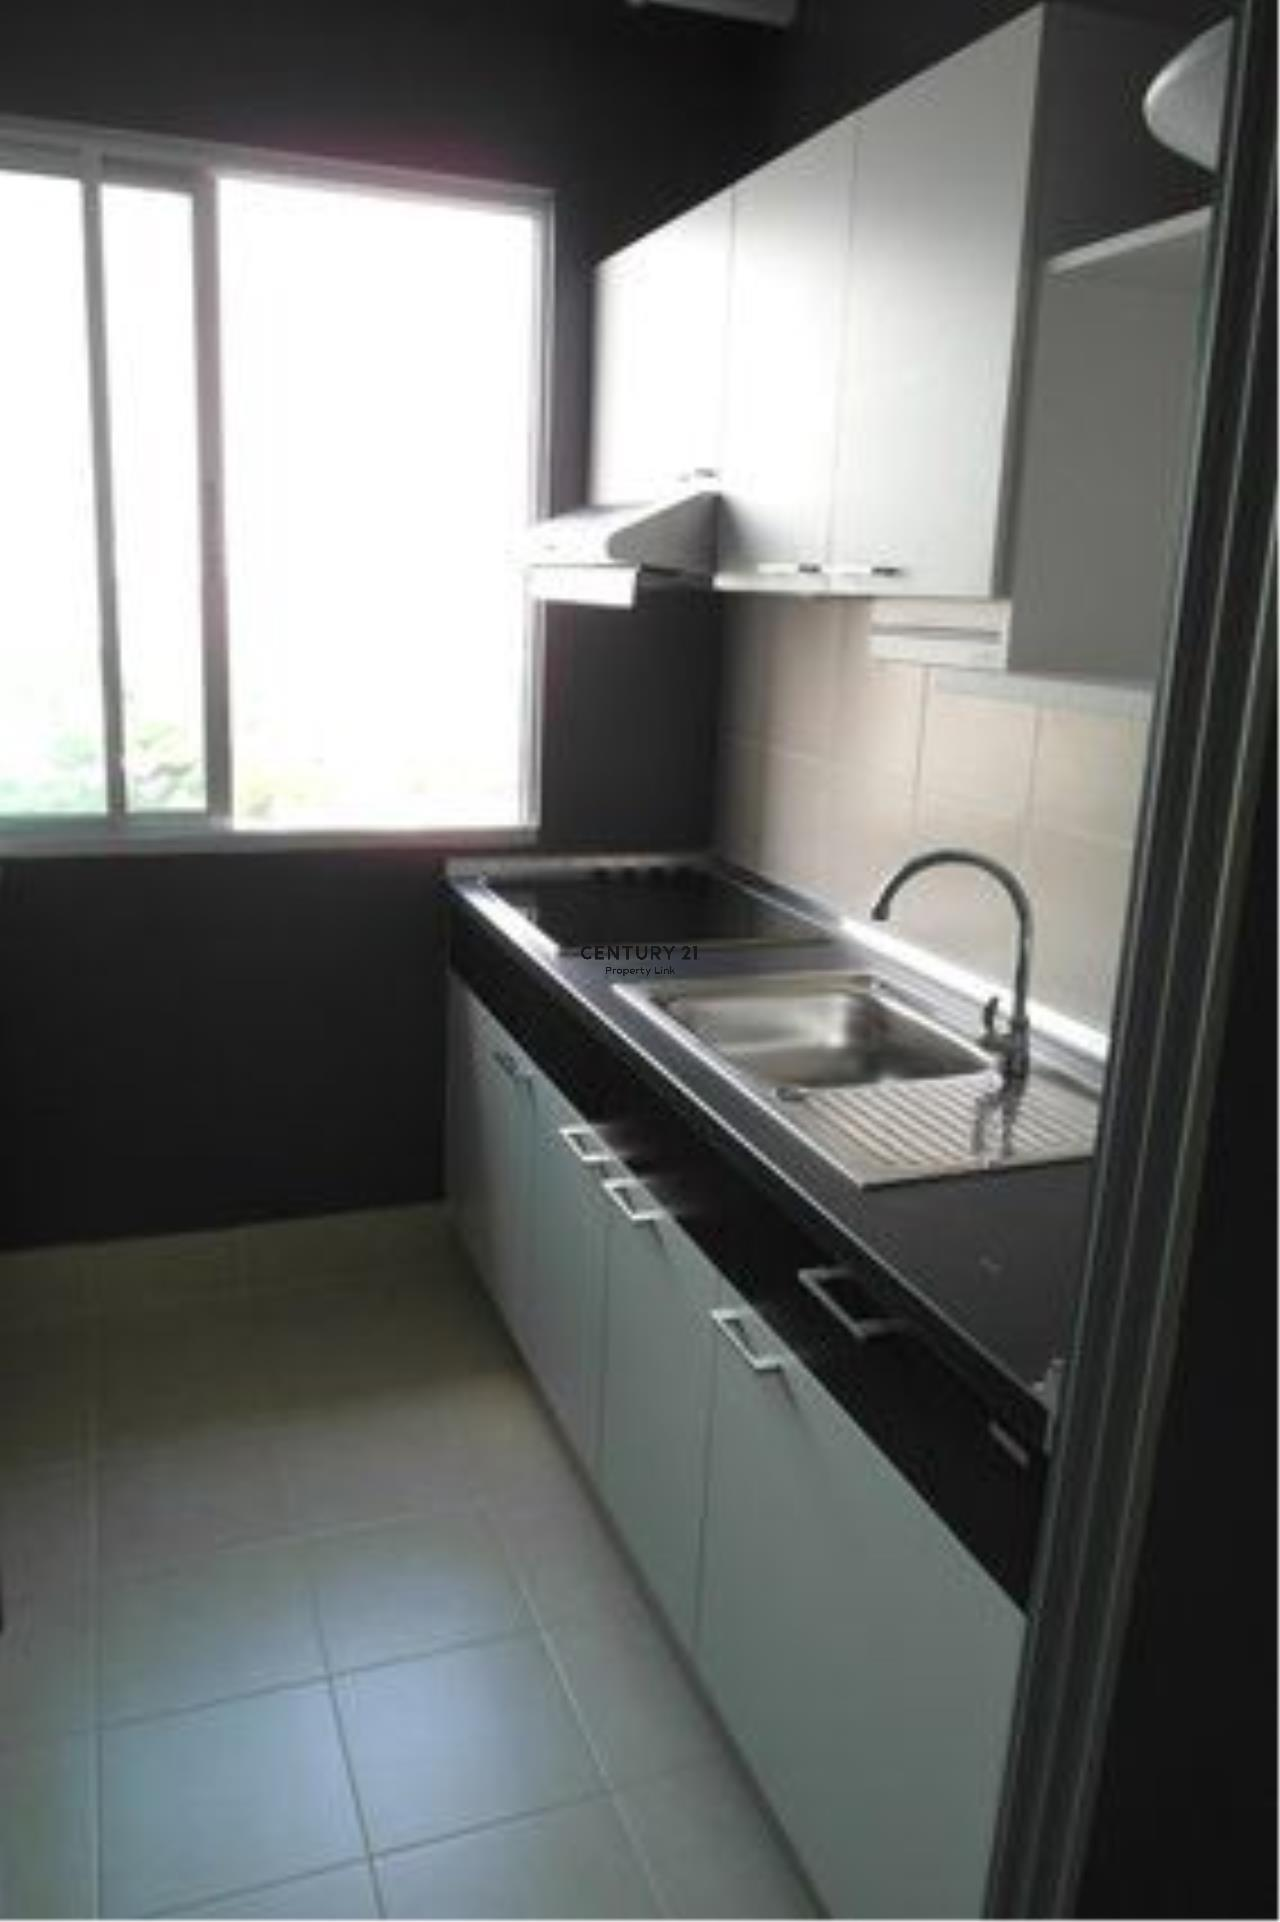 Century21 Property Link Agency's 39-CC-61272 Supalai Park Ratchayothin Room For Sale 2 Bedroom Chatuchak Nearby Phahon Yothin MRT Selling price 5 MB.   6